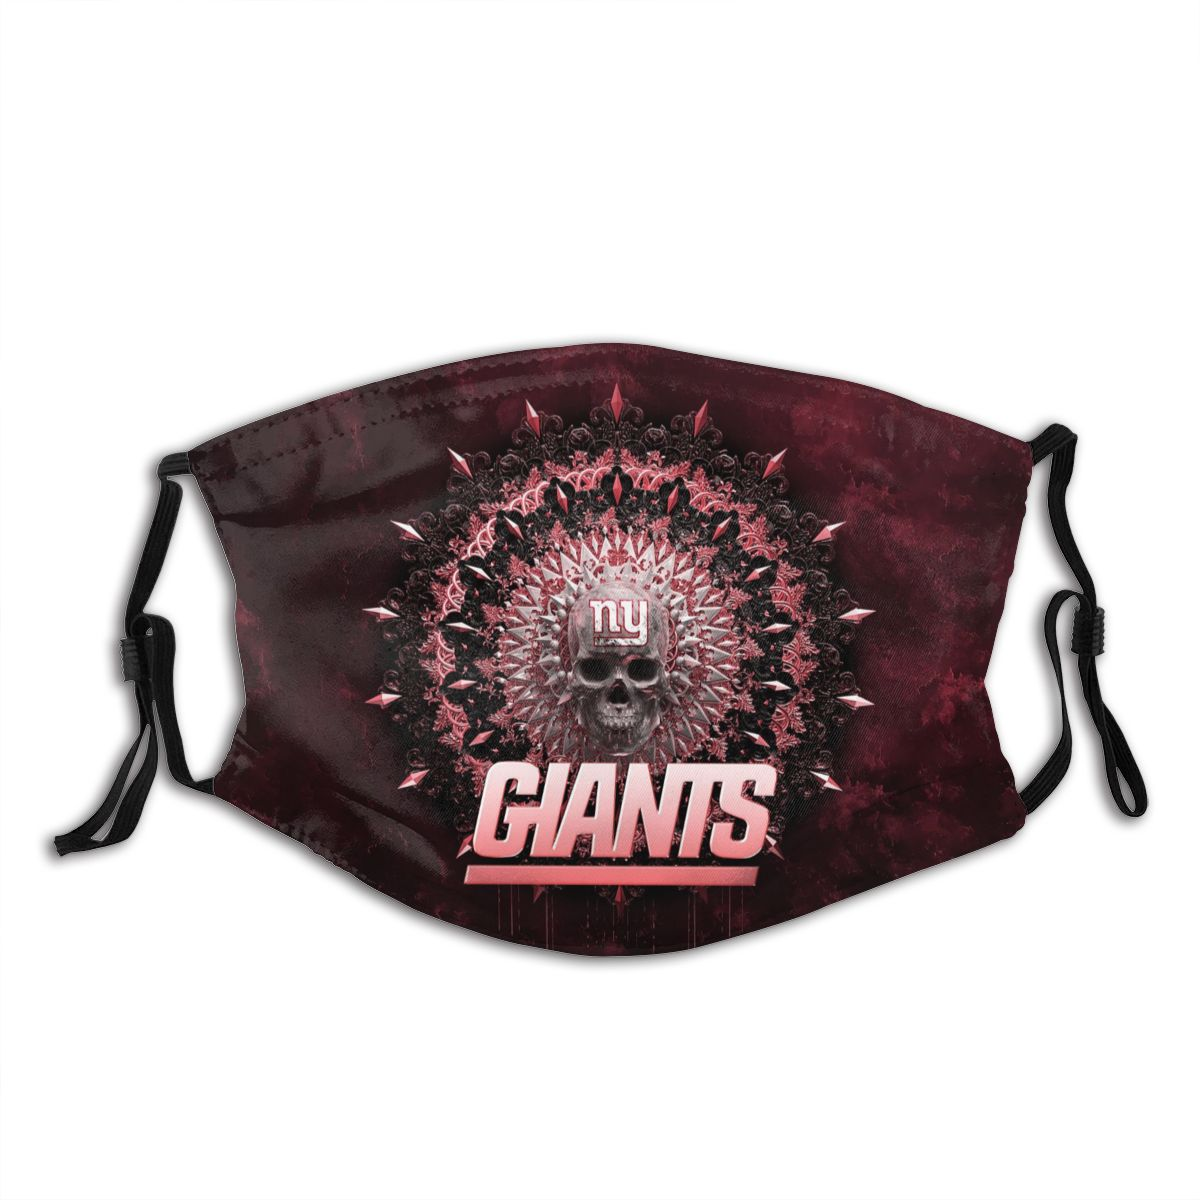 Giants Adult Cloth Face Covering With Filter